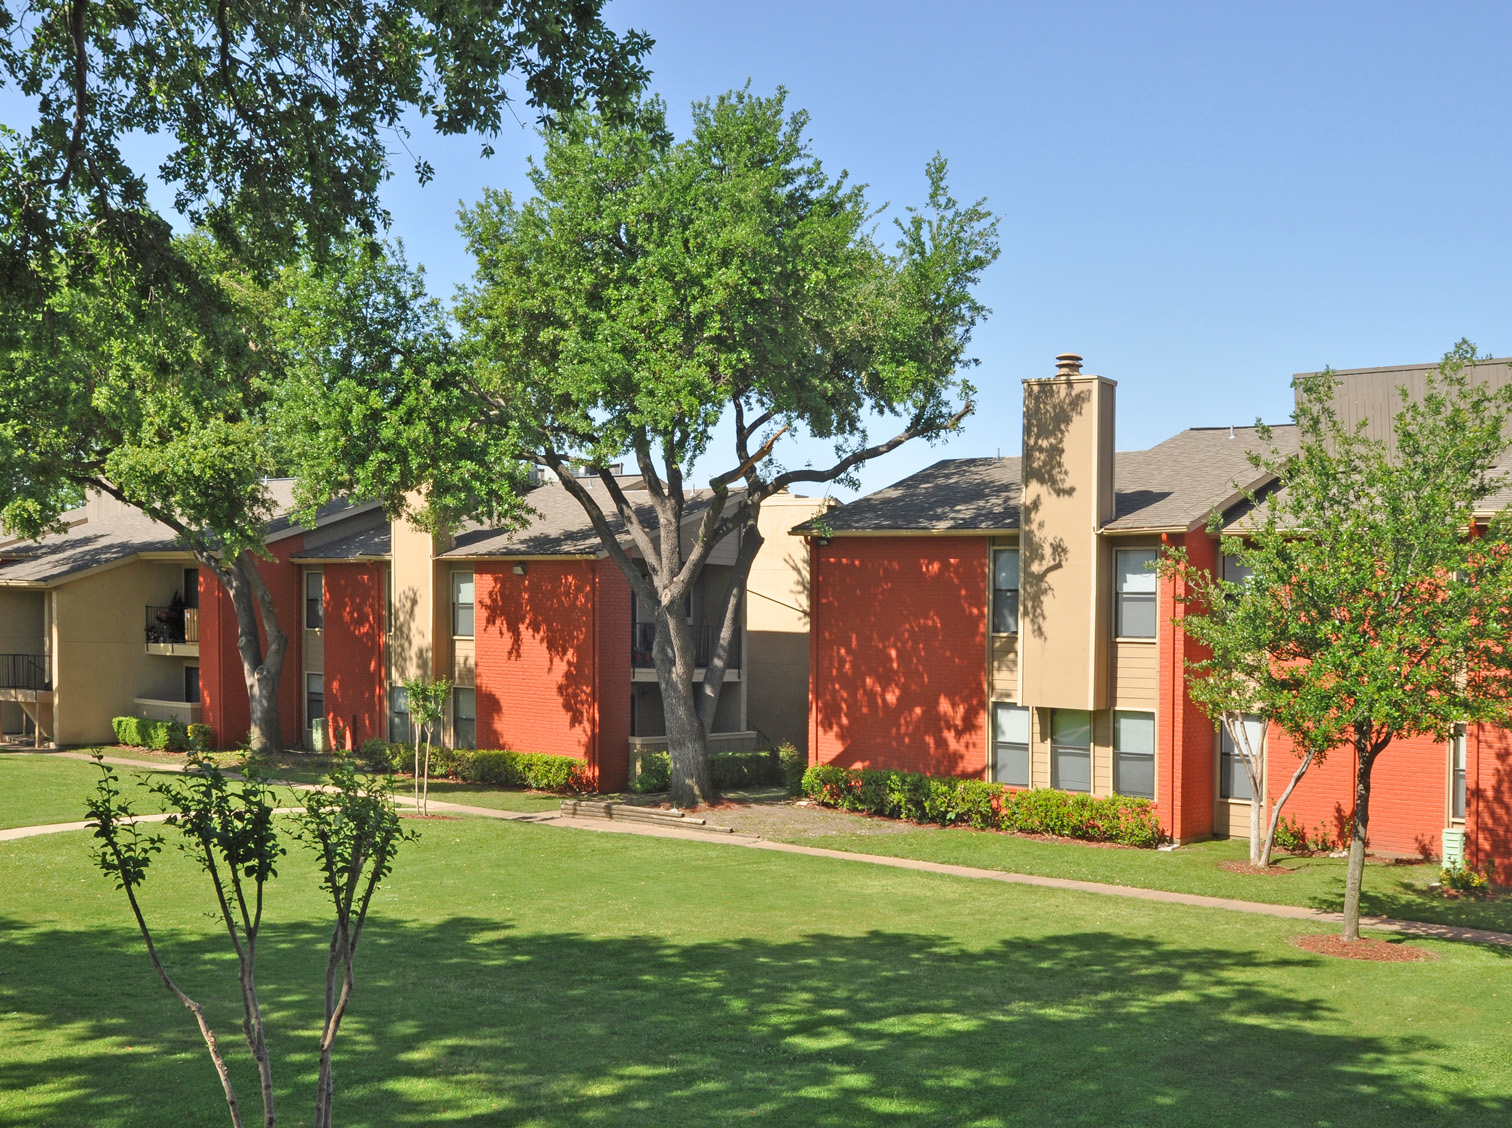 Exterior and Lawn | Apartment Homes in Dallas, TX | Deerfield Apartments